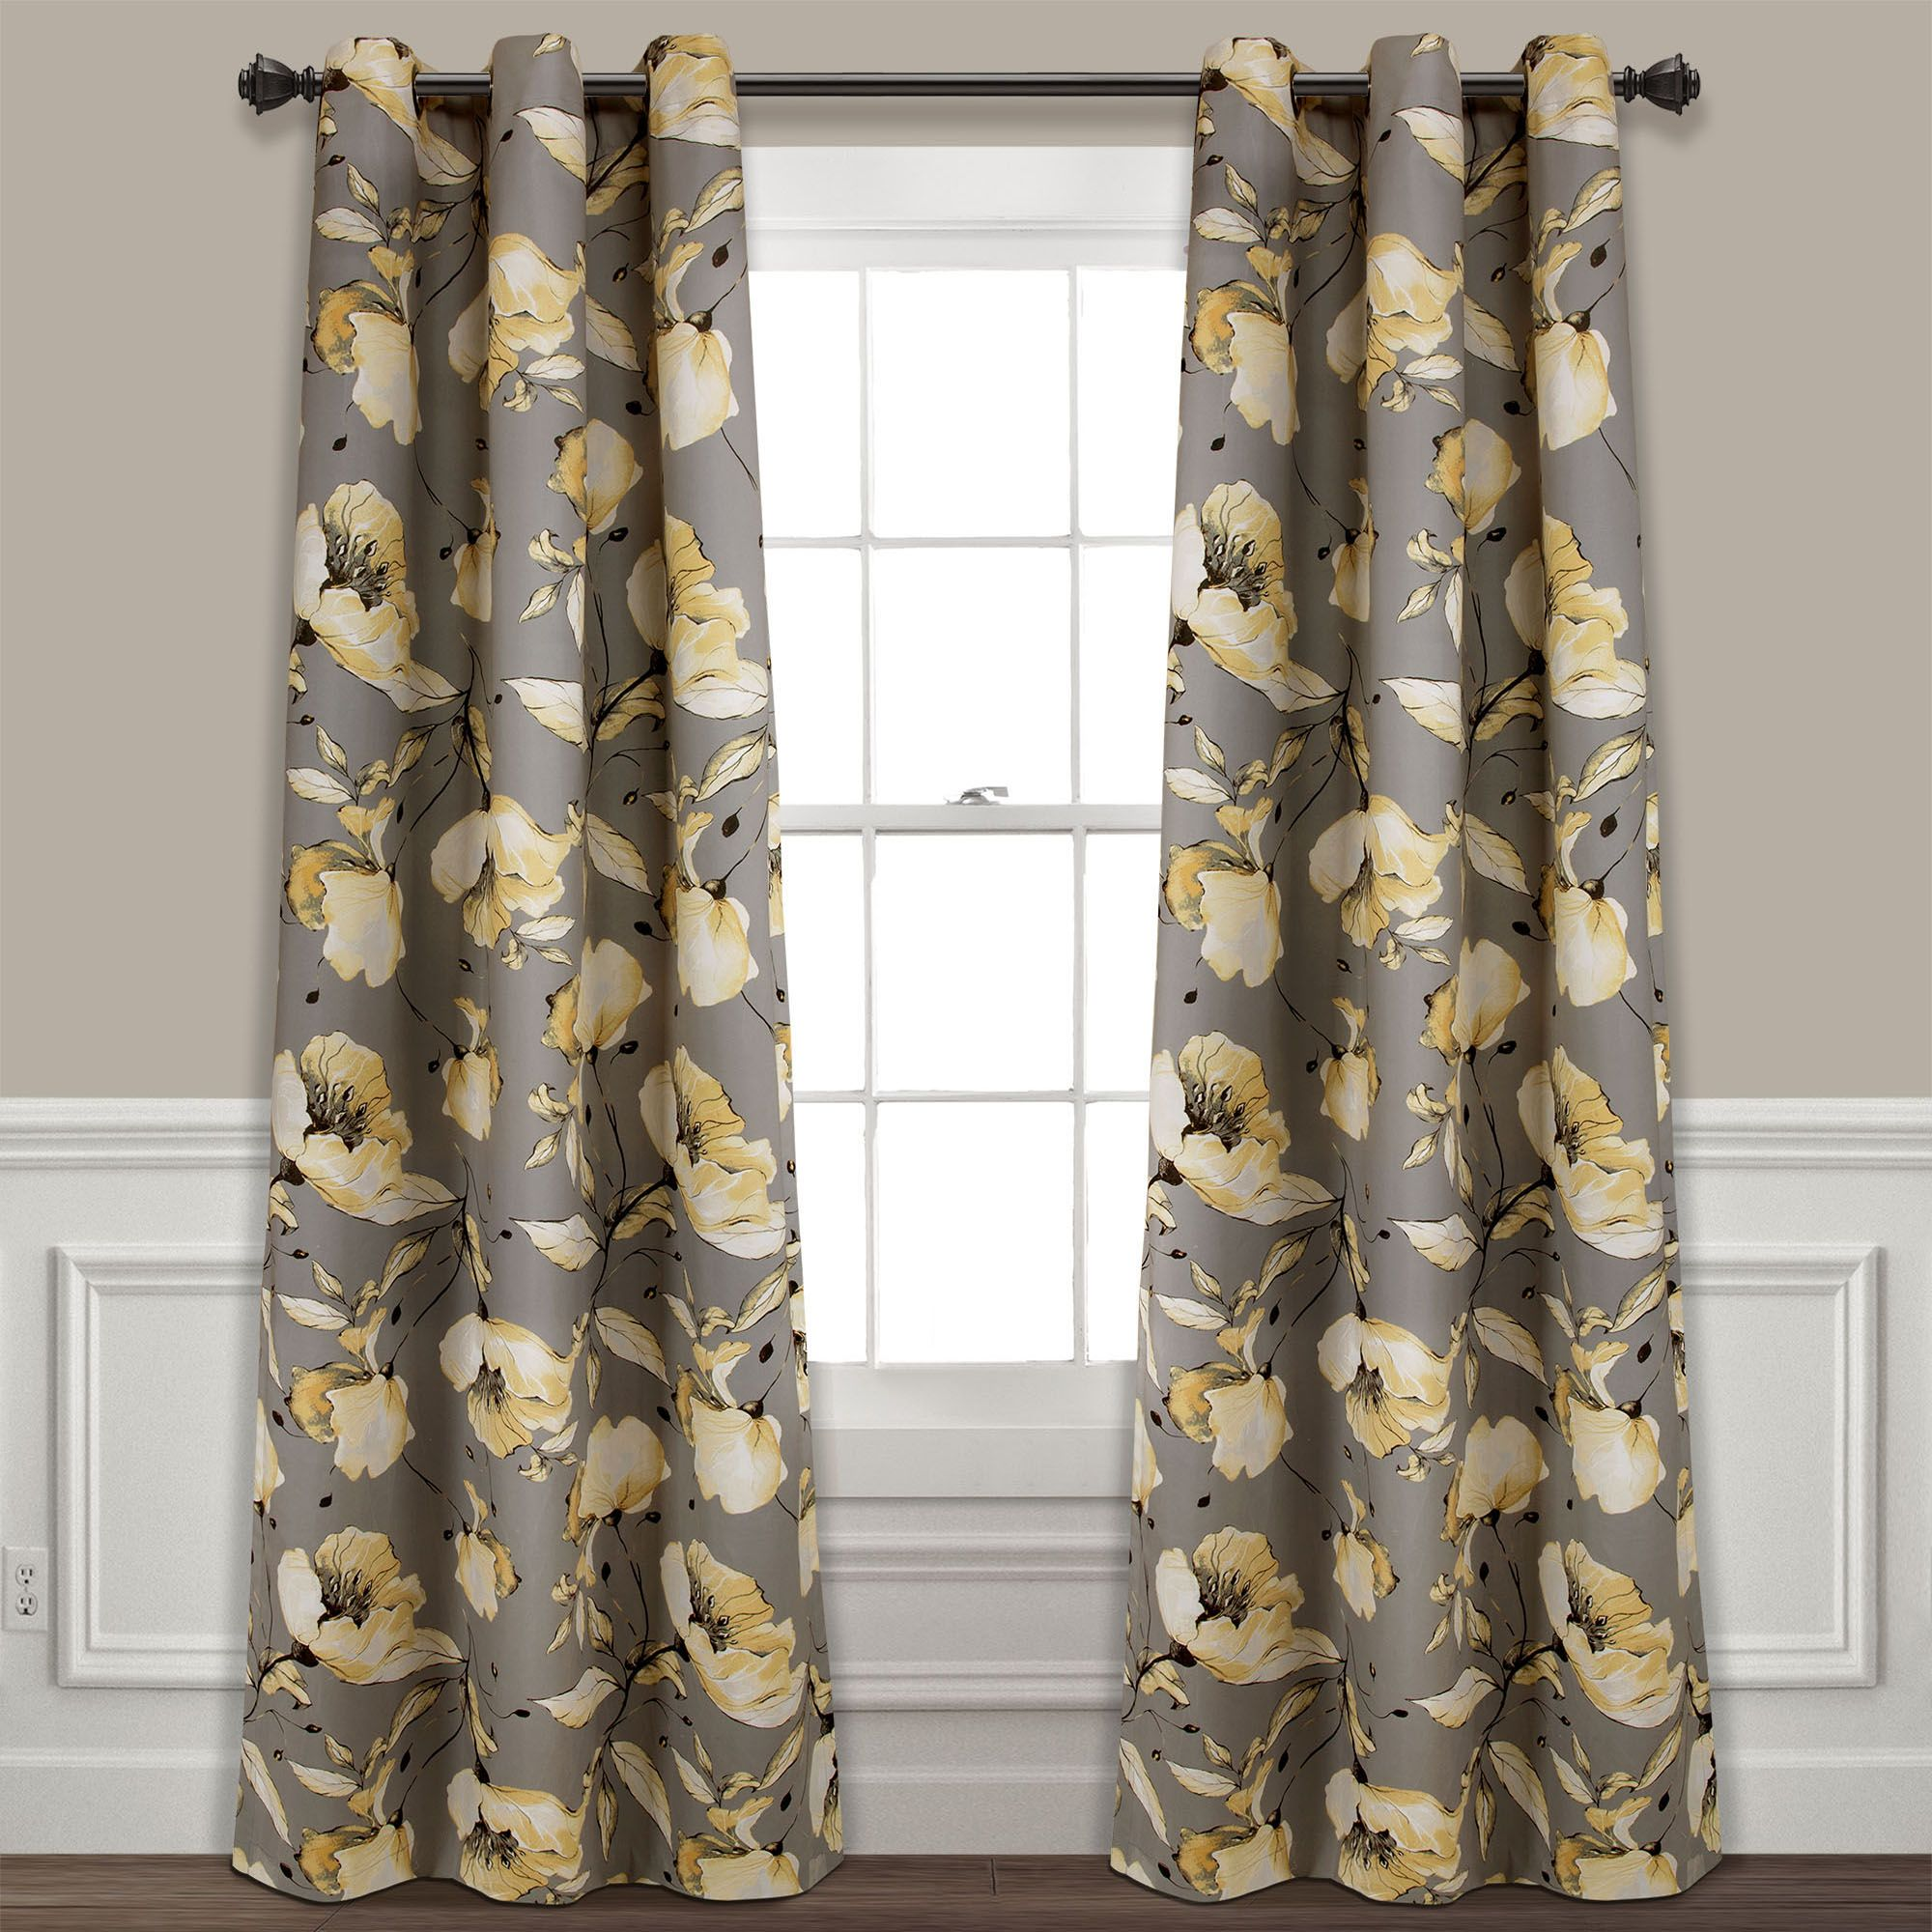 Delsey Floral Absolute Blackout Window Curtain Set Curtains Panel Curtains Window Curtains